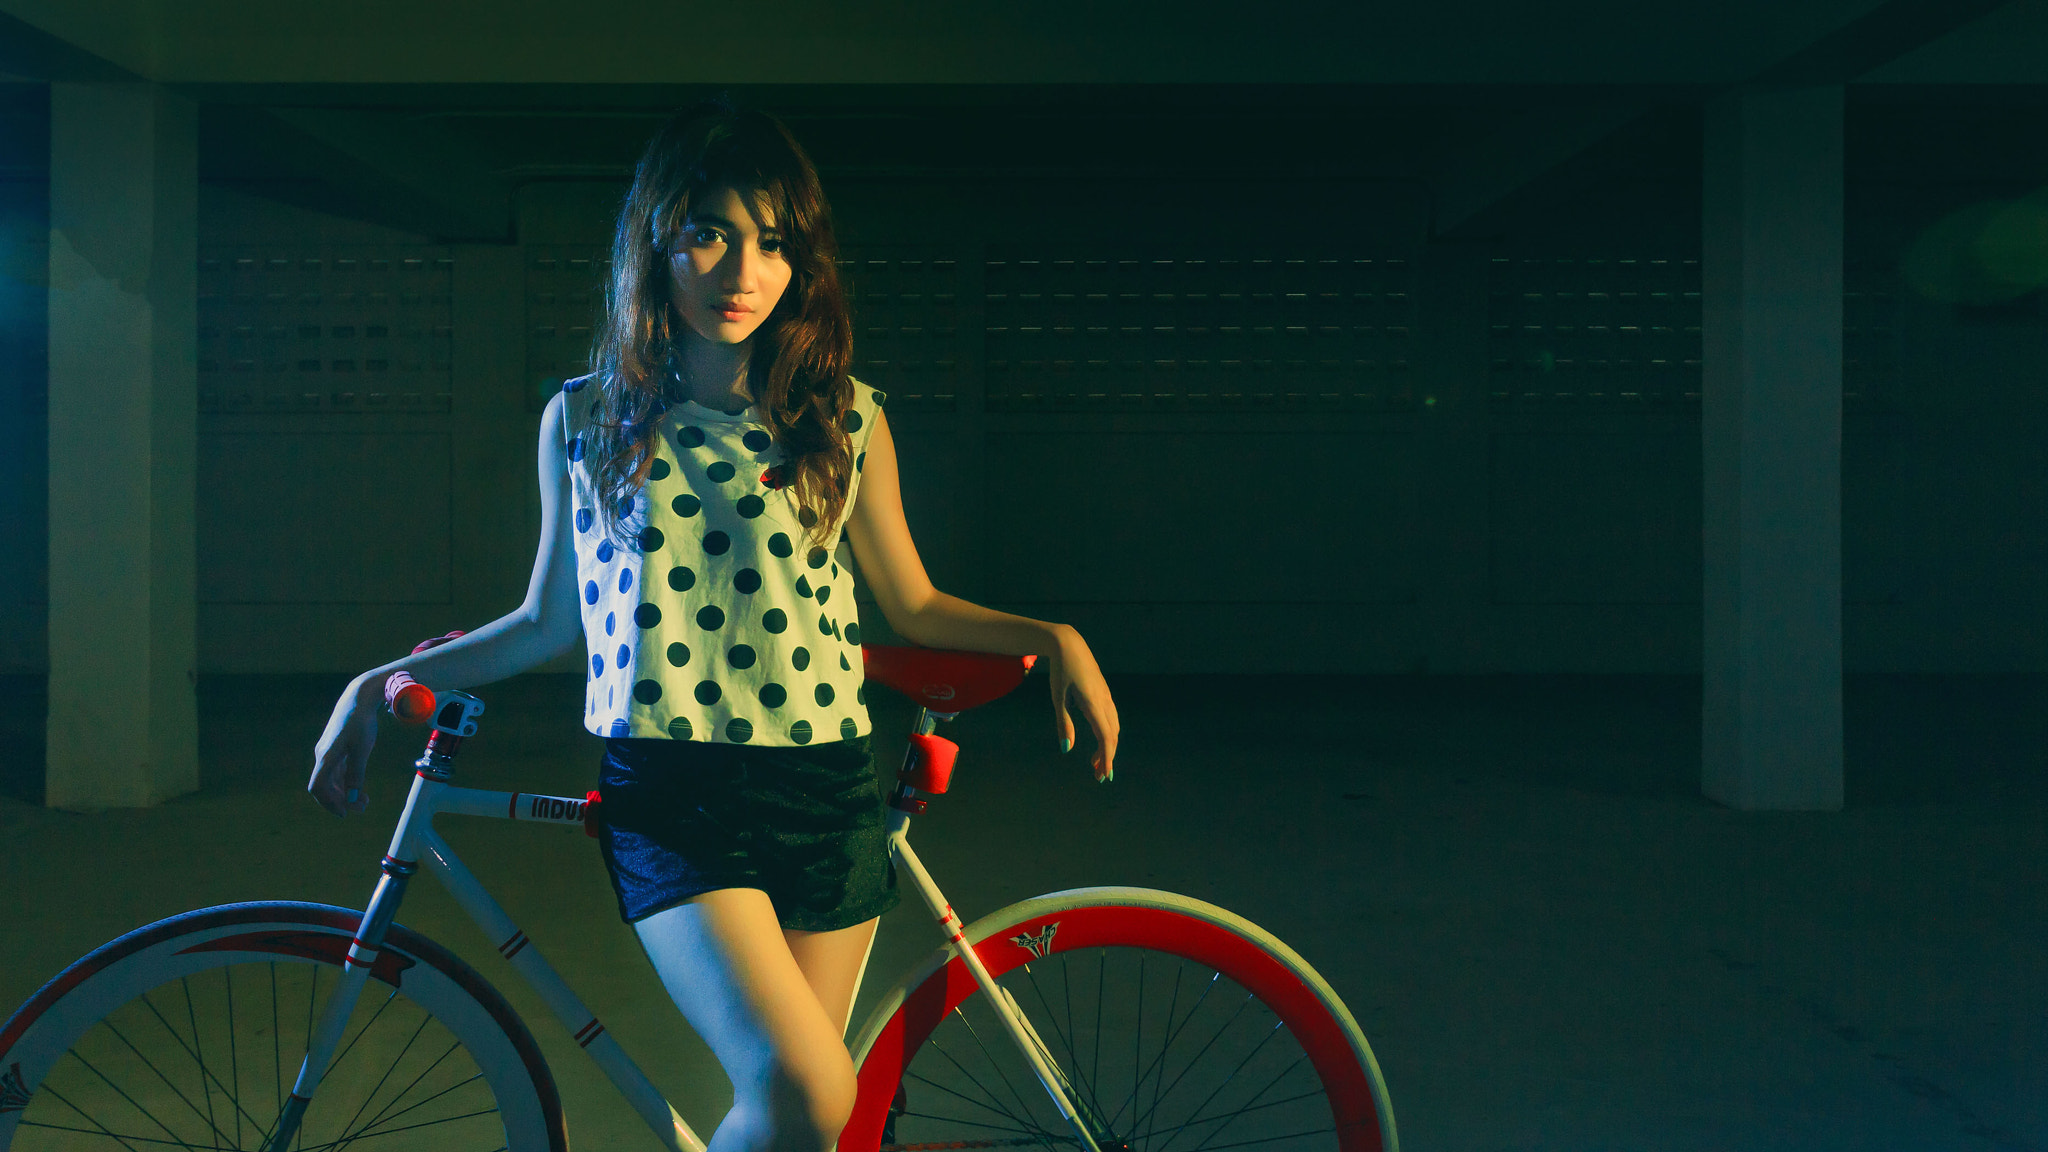 Photograph Fixed Gear Girl by Satawat Khumsongsee on 500px